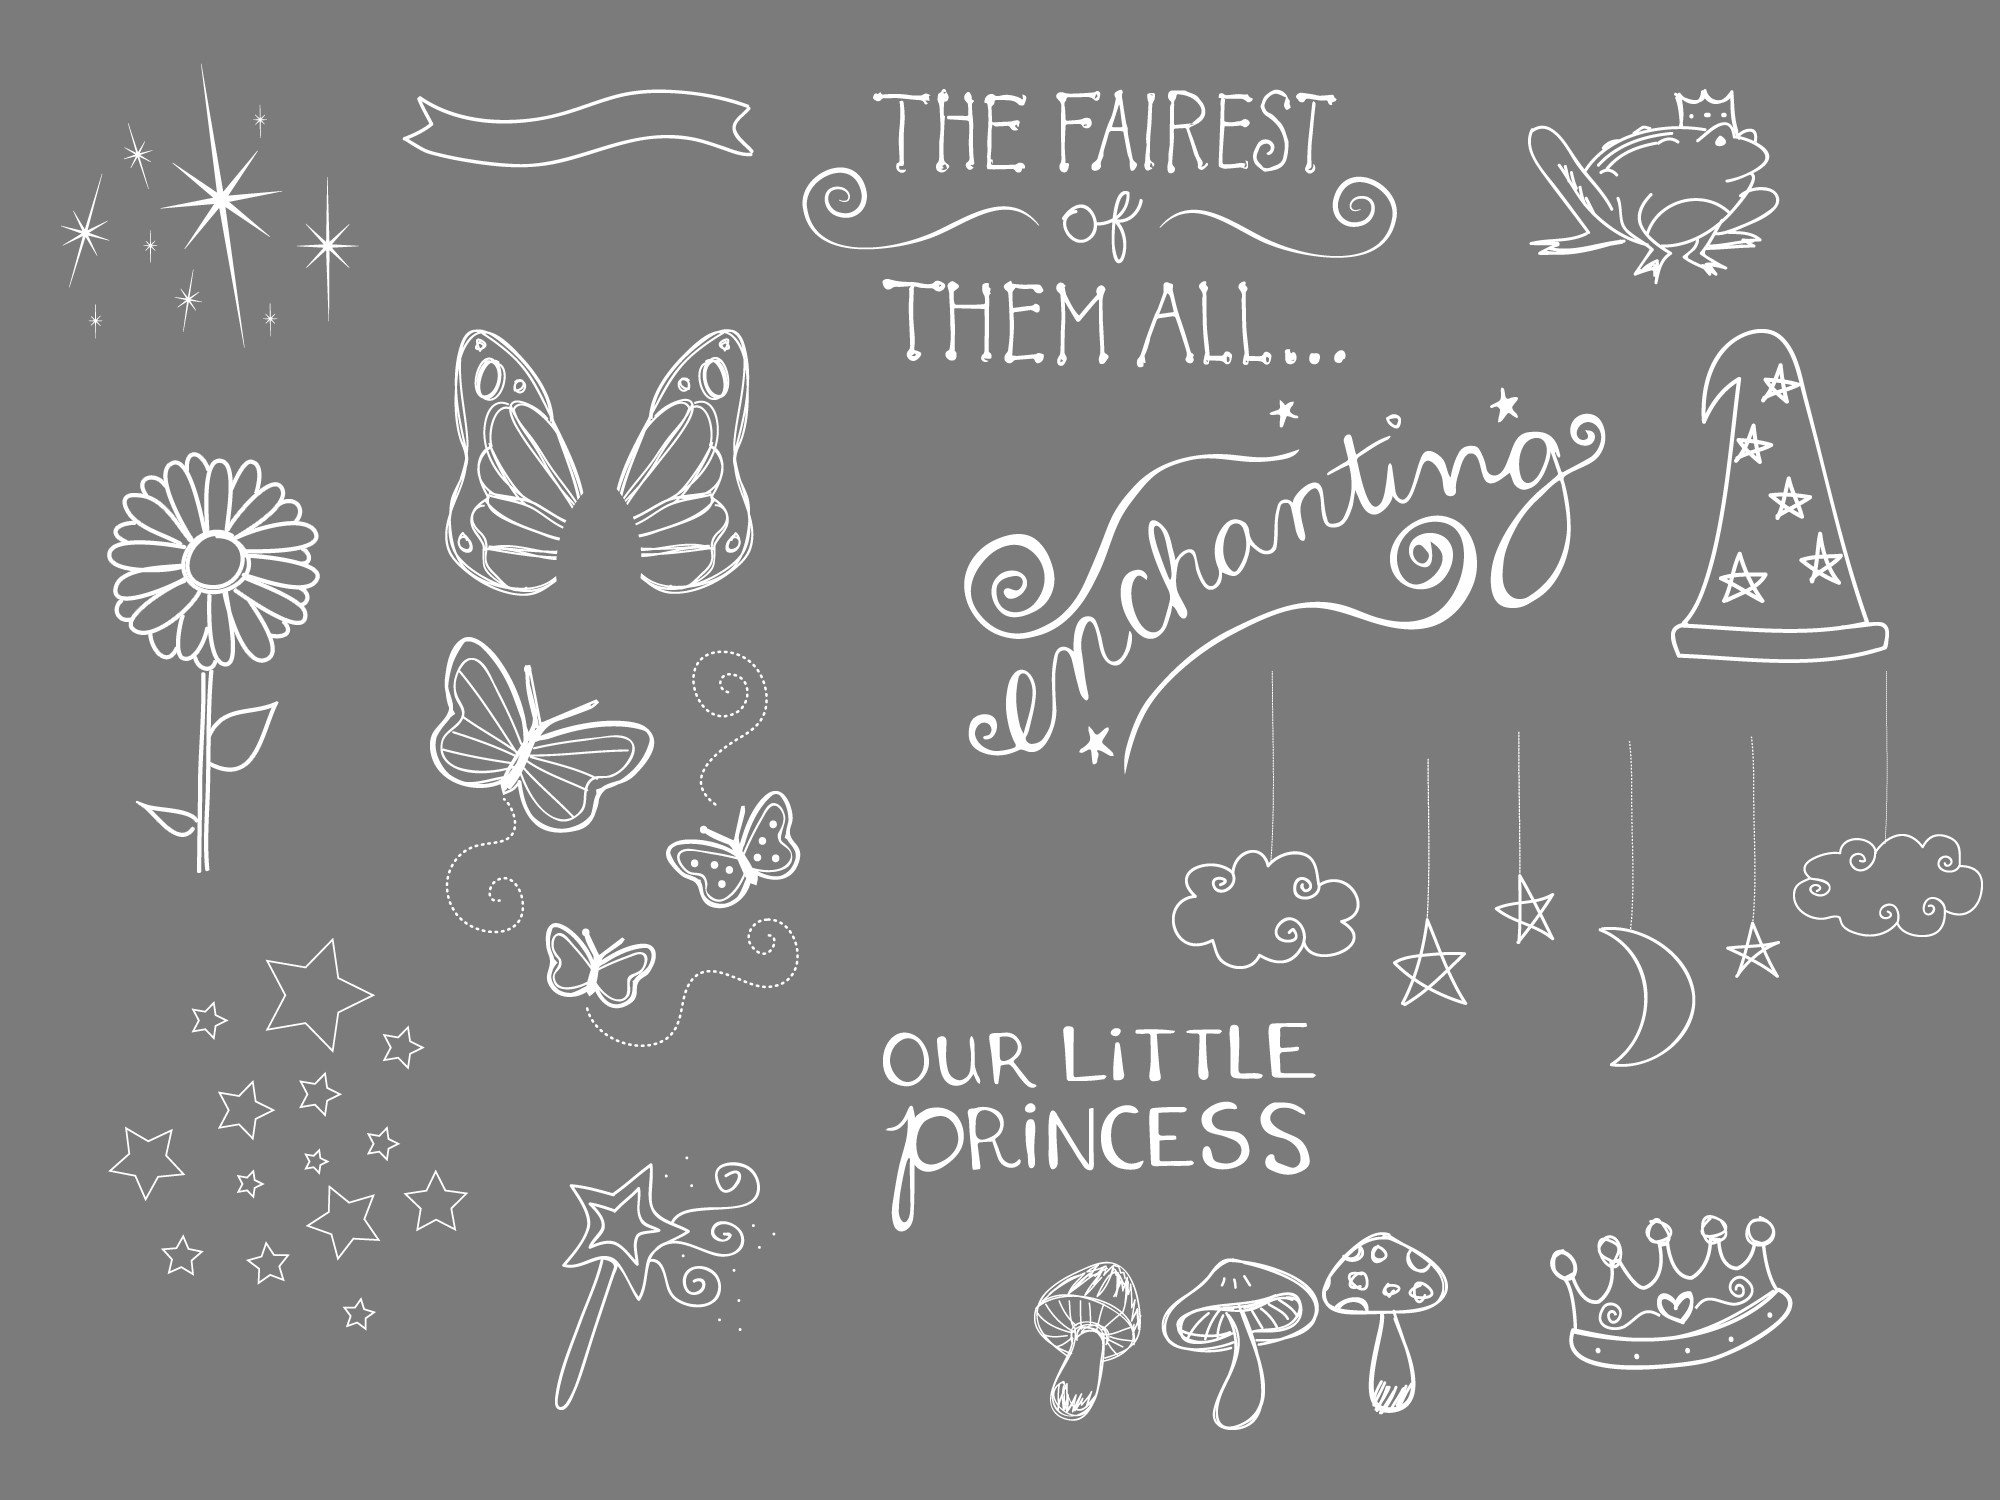 Drawn princess superhero fairytale DOODLES The FAIRYTALE Shoppe AND